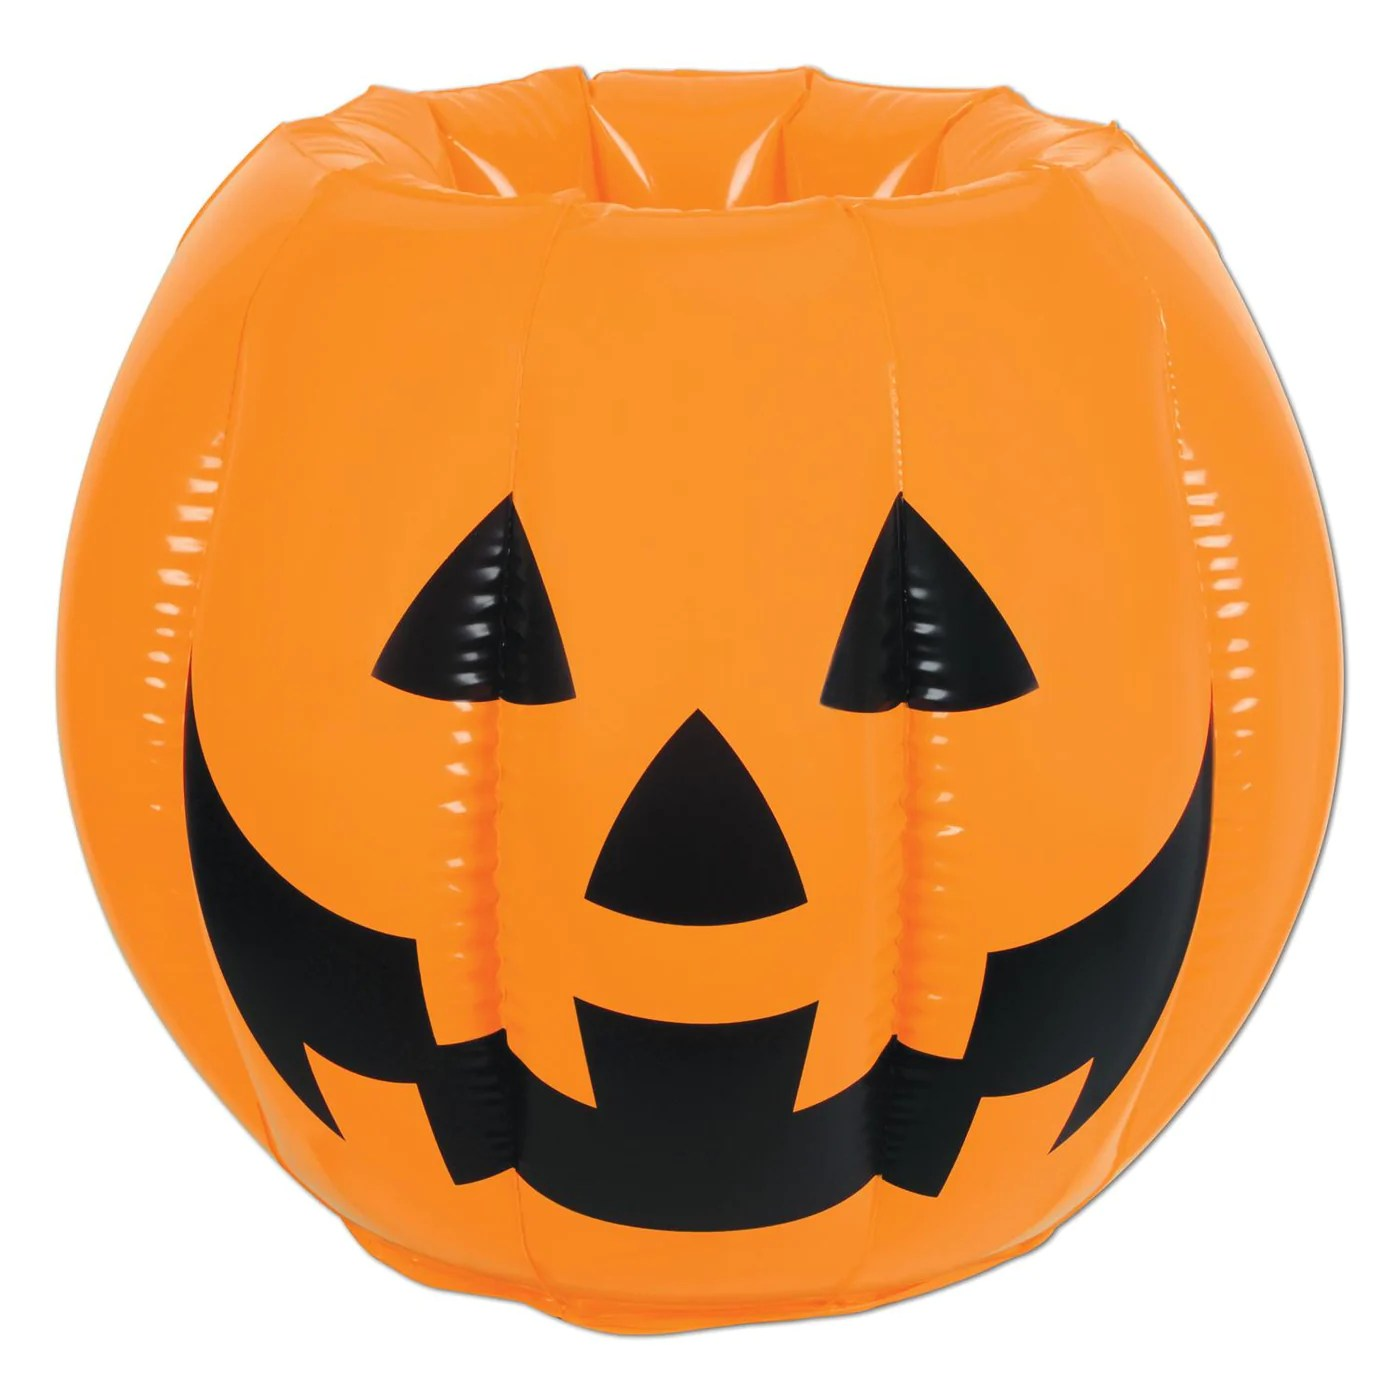 Serviette De Table Halloween Bulk Party Supplies Discount Party Decorations For